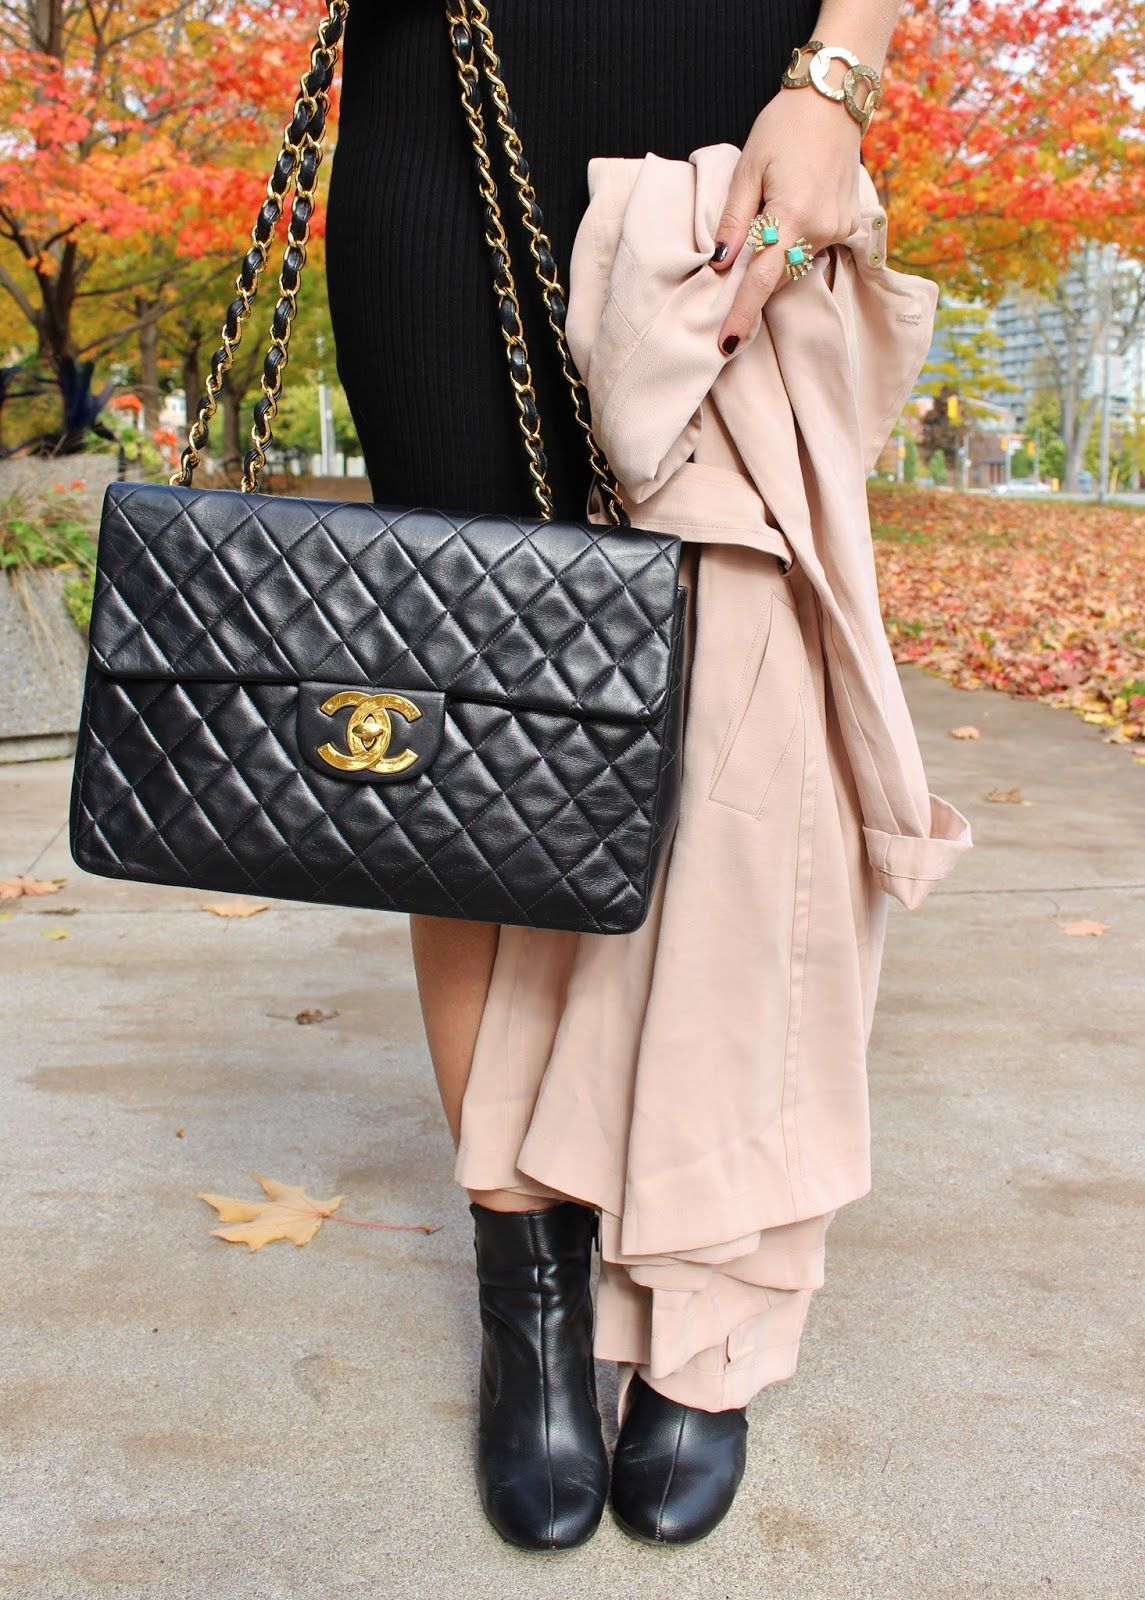 880a787cdaeeb4 Steal the Celebrity Look with GUESS | Pink | Vintage chanel bag ...